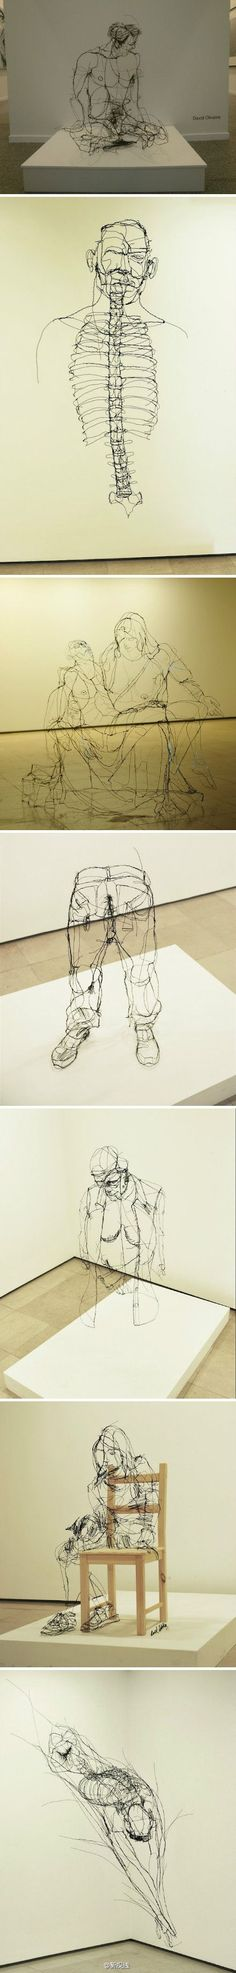 wow - sculpture made from iron strings! by Portuguese artist David Oliveira